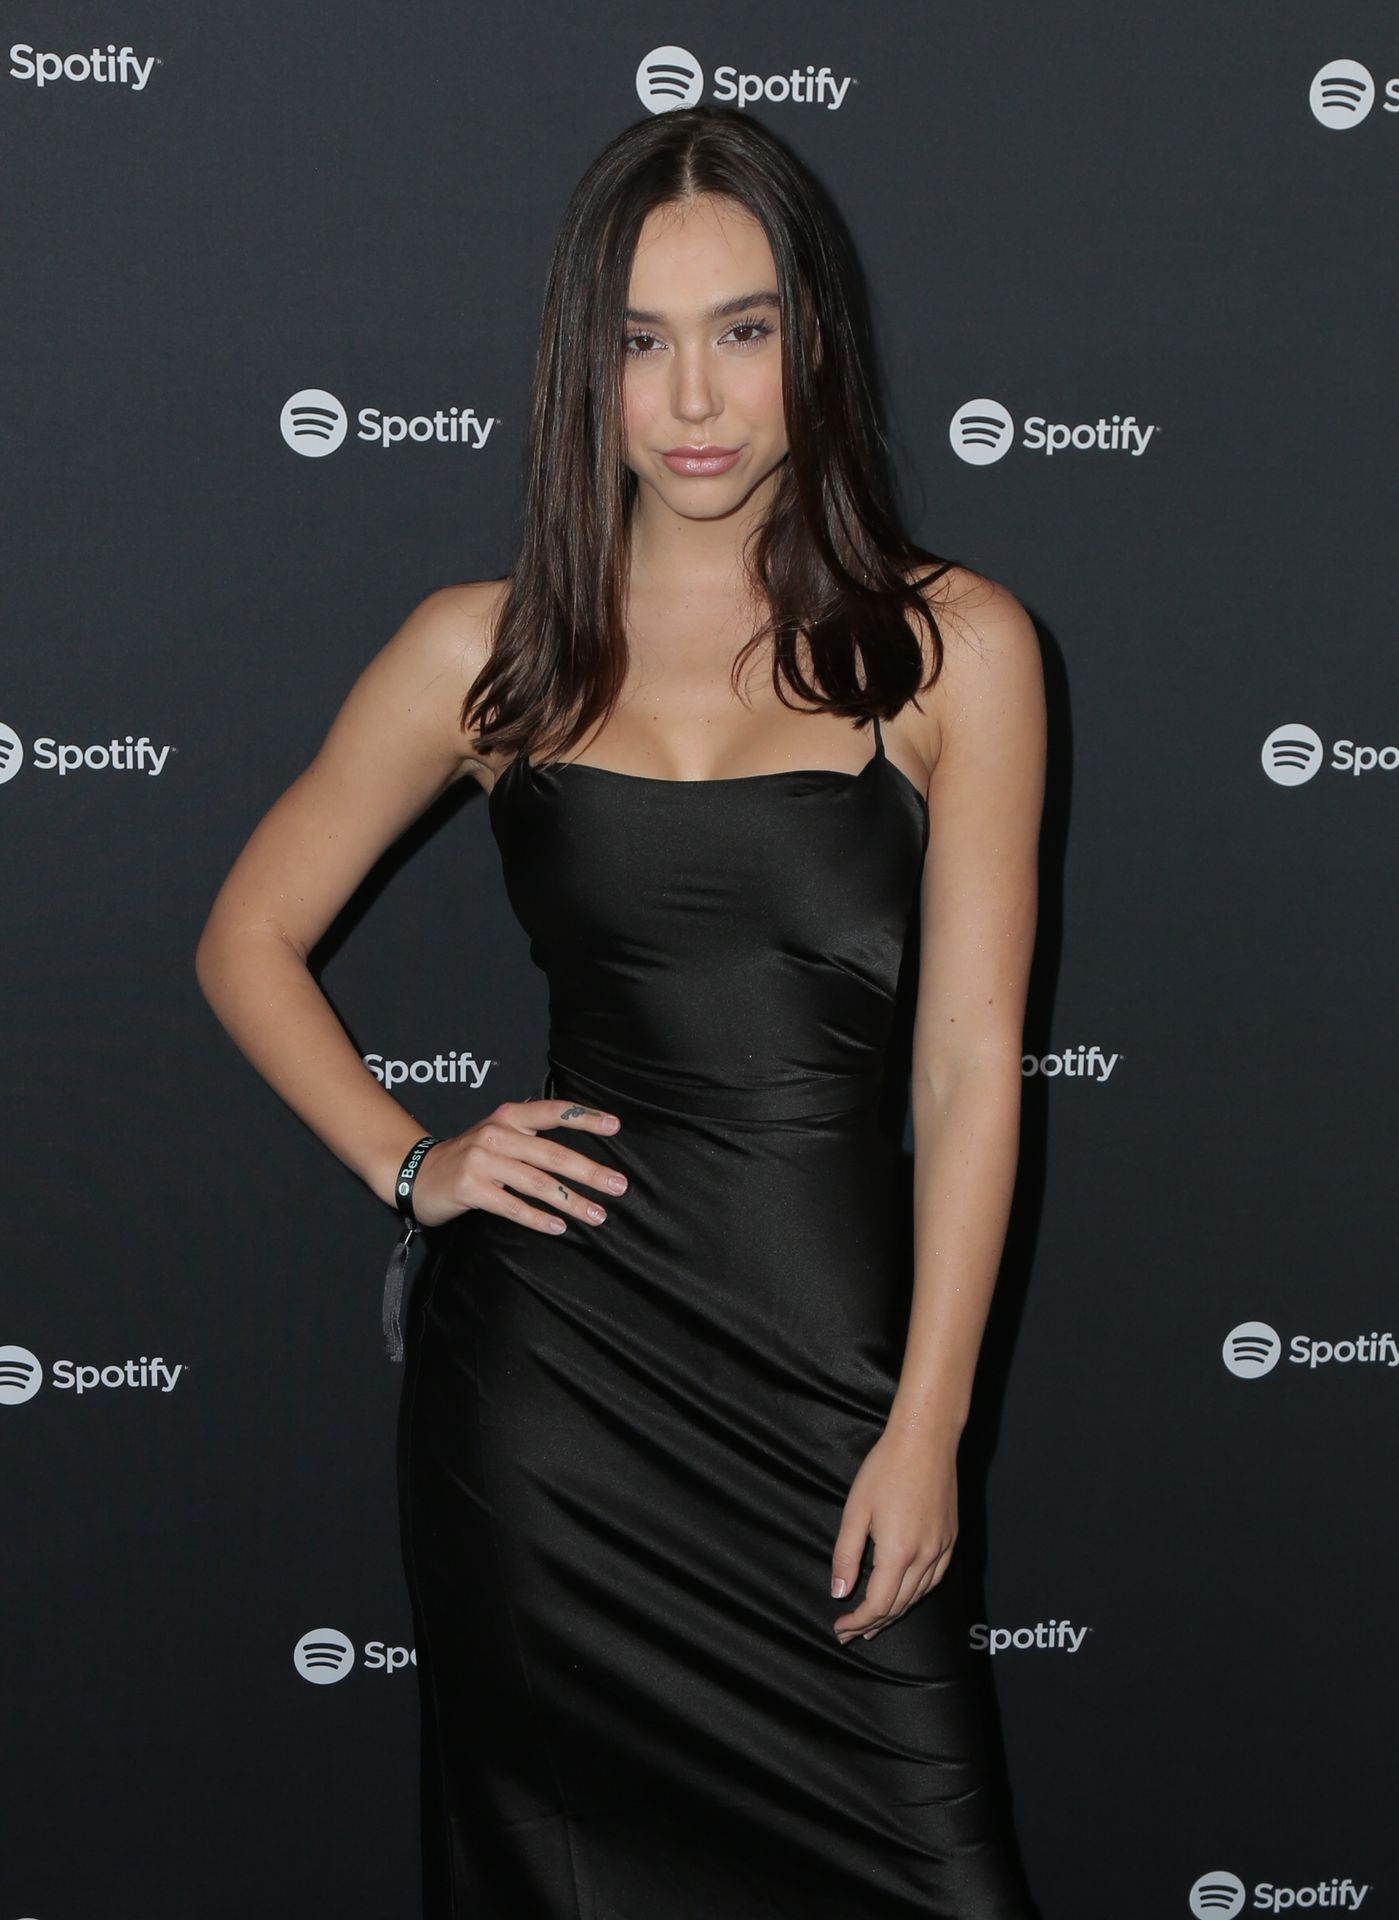 Alexis Ren Shows Off Her Tits At The Spotify Best New Artist Party 0007